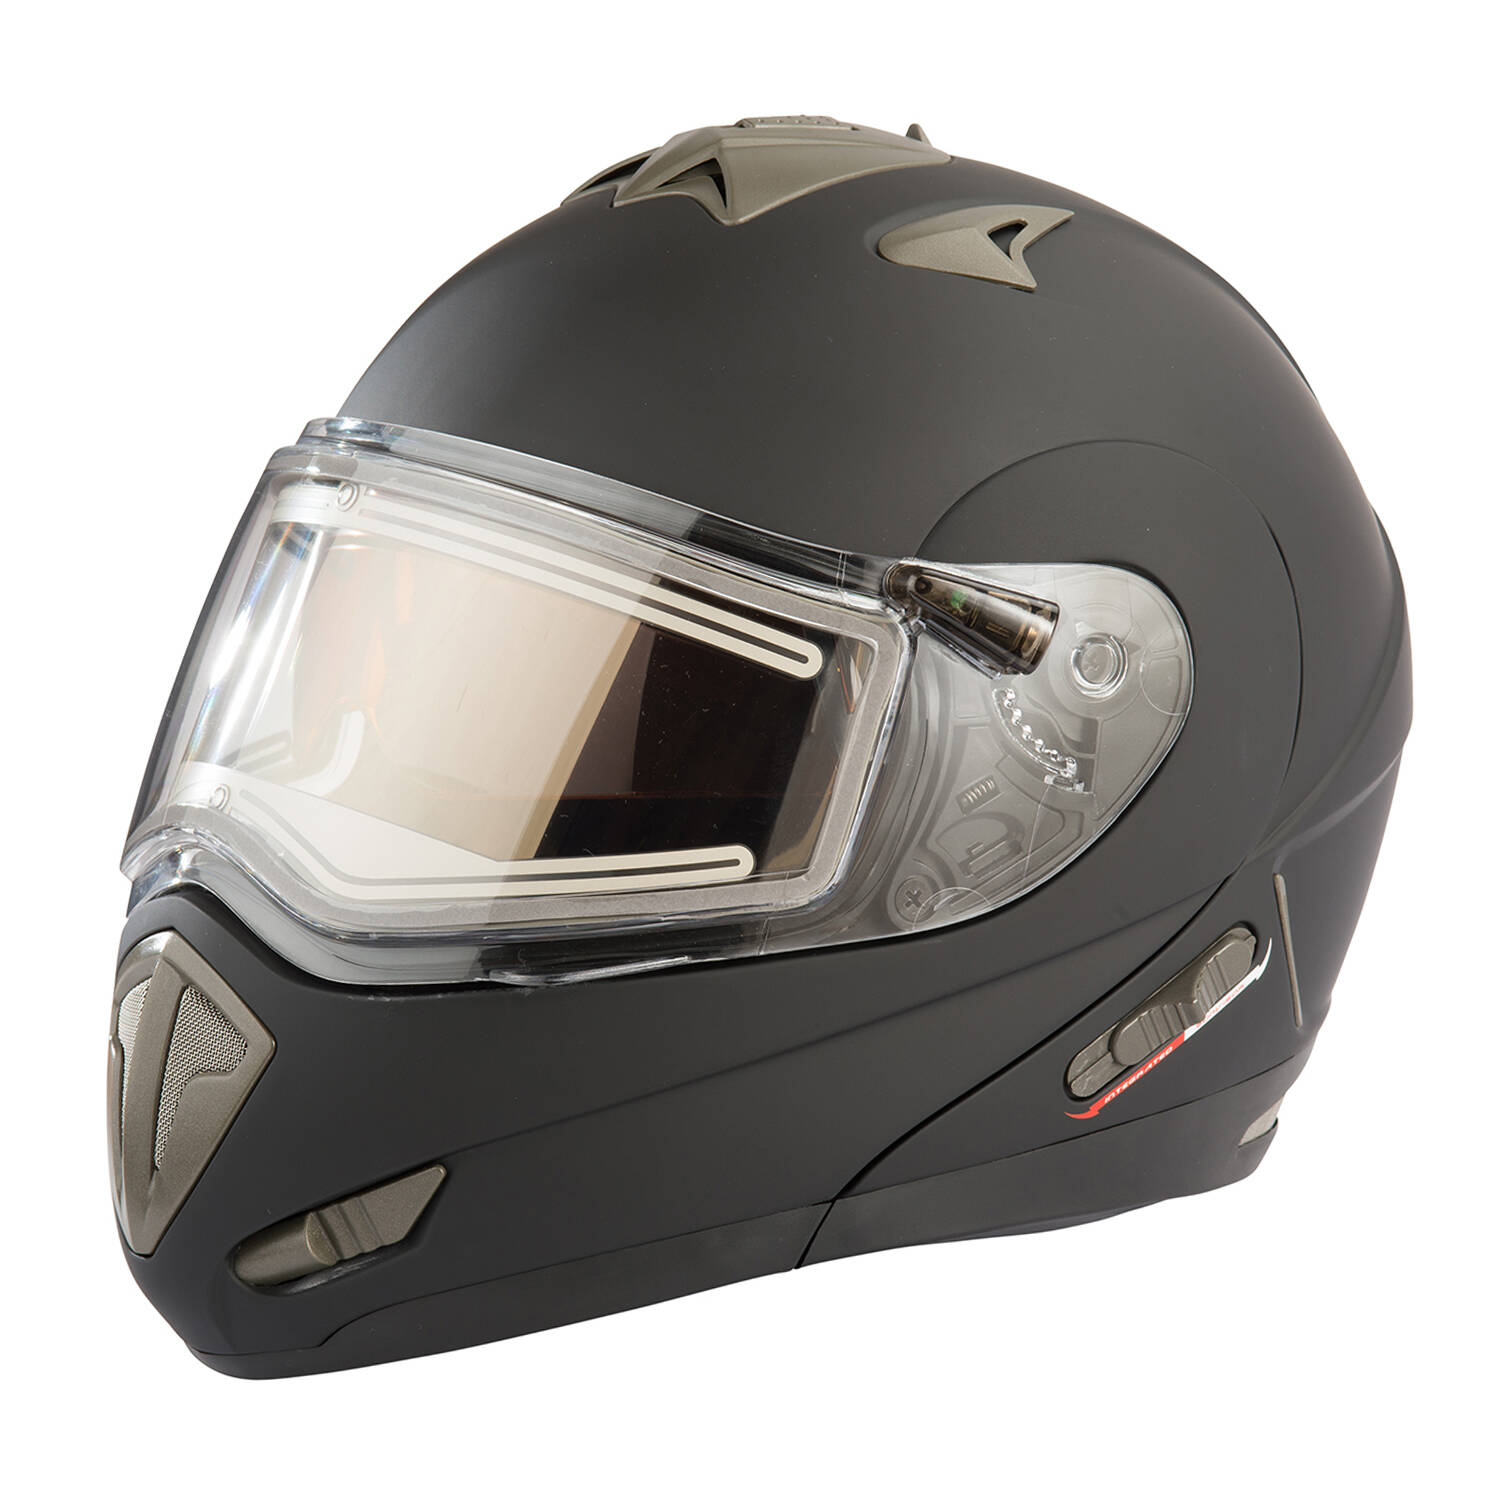 Modular 1.0 Adult Helmet with Electric Shield, Black